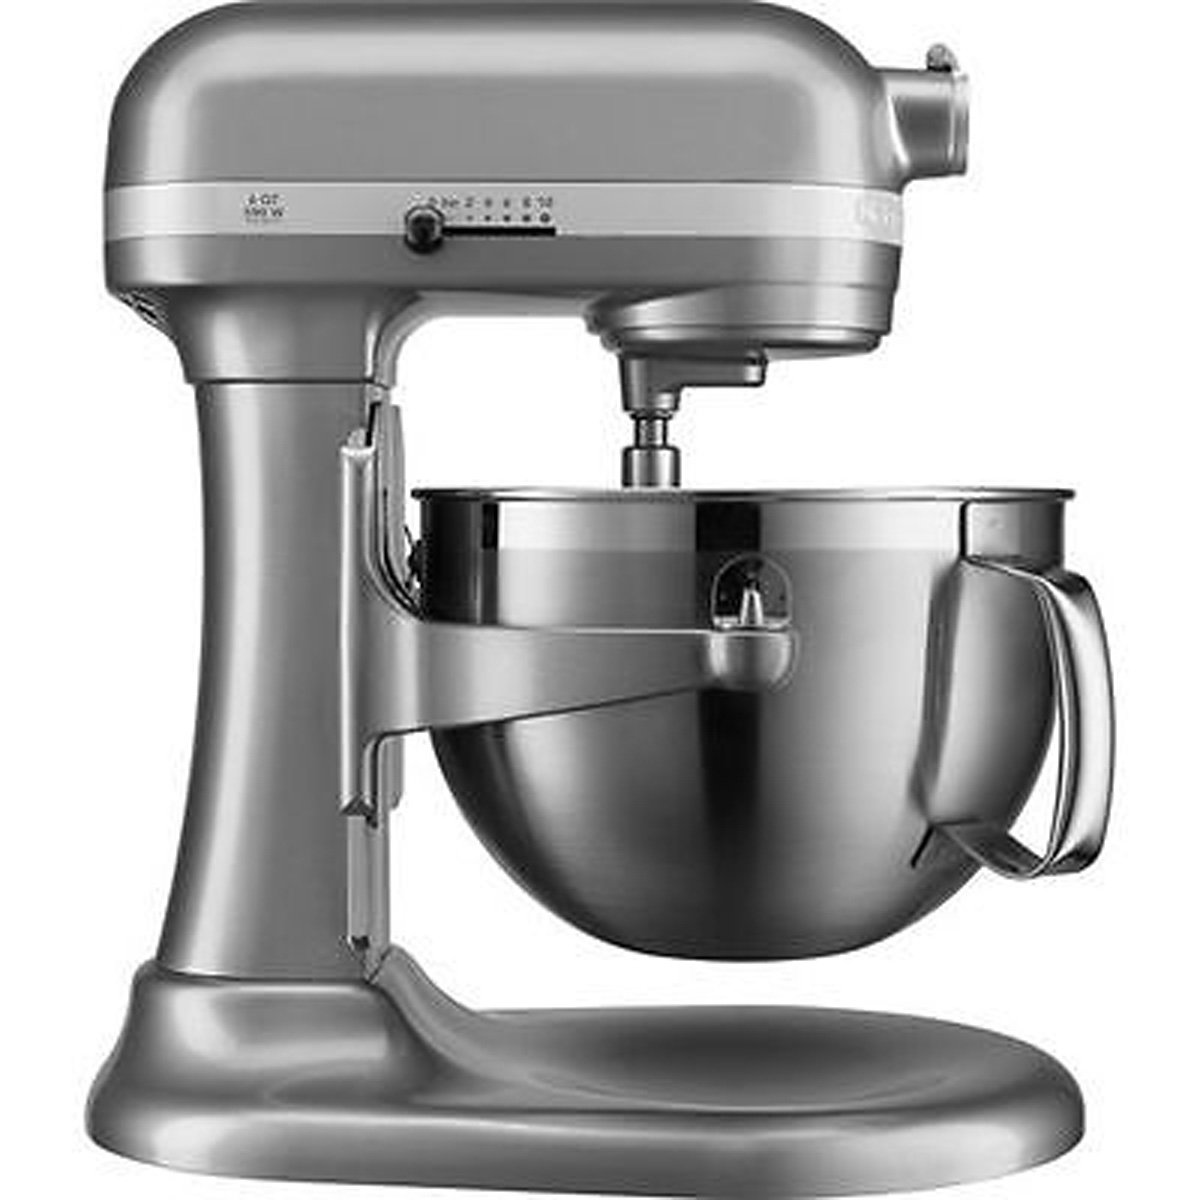 KitchenAid KP26M9XCCU 6-Quart Bowl-Lift Professional Stand Mixer, Contour Silver